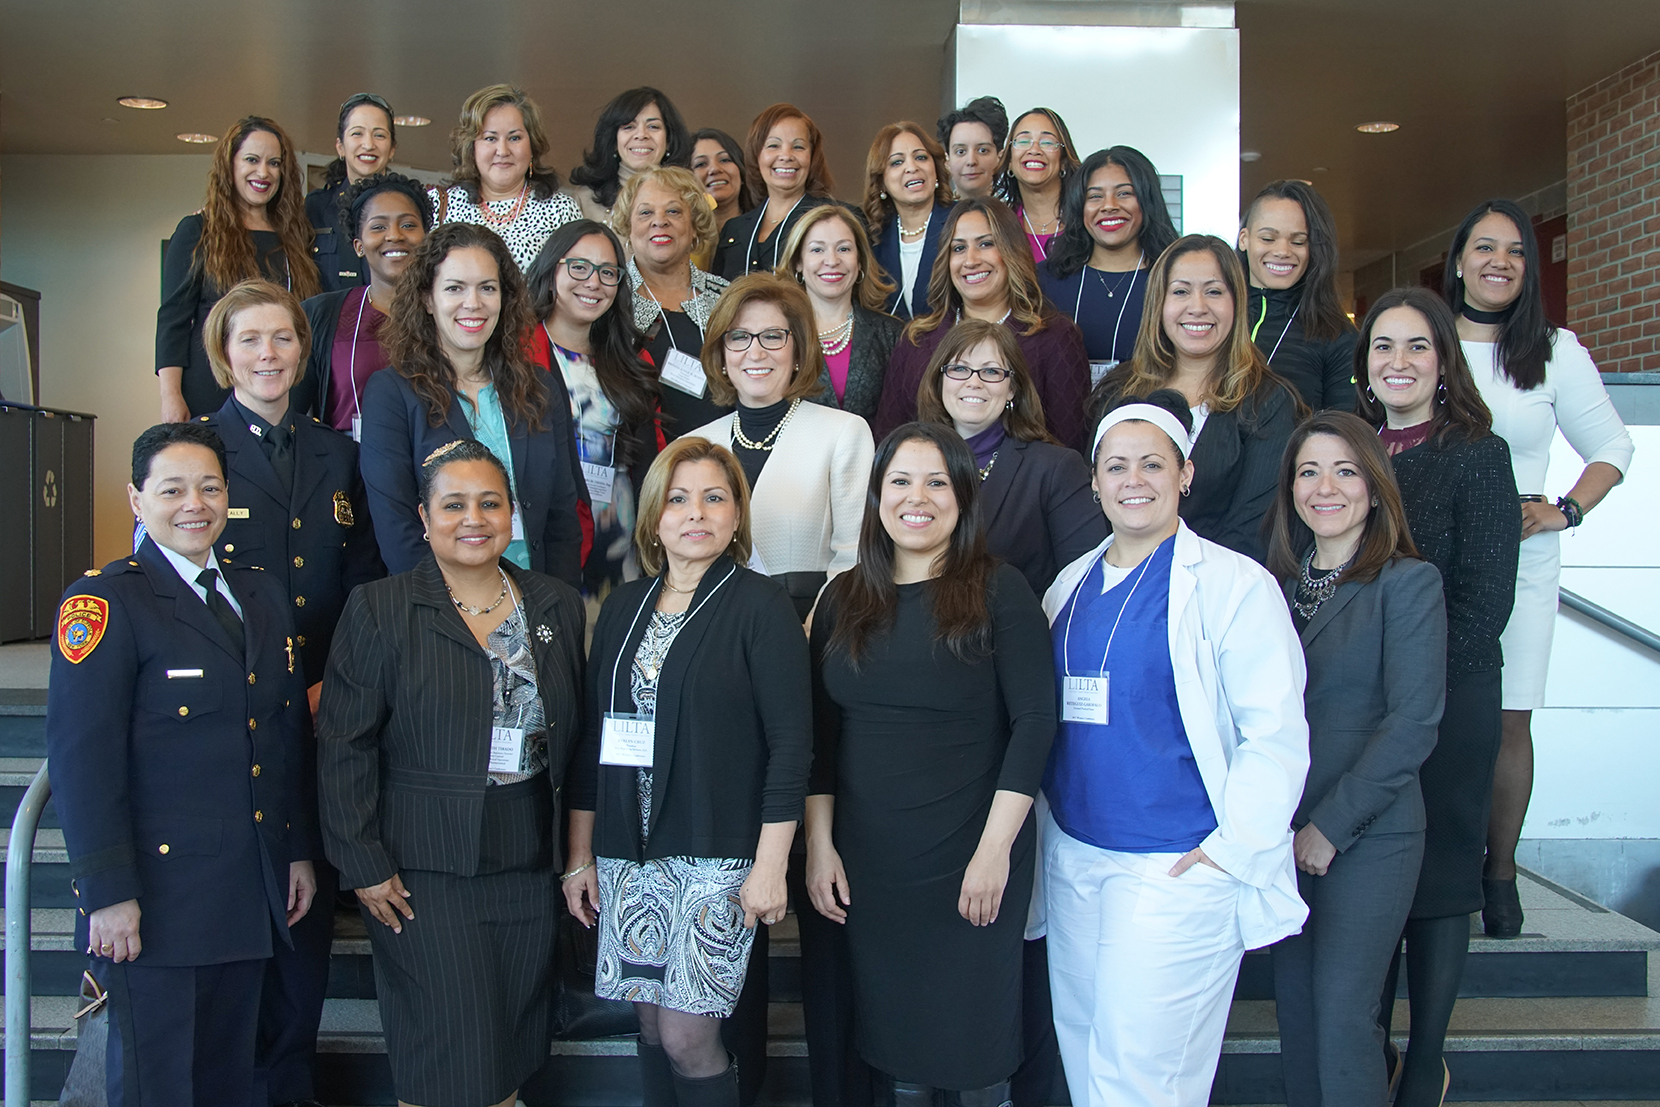 Nearly 40 women from a variety of professions offered their time and encouragement.